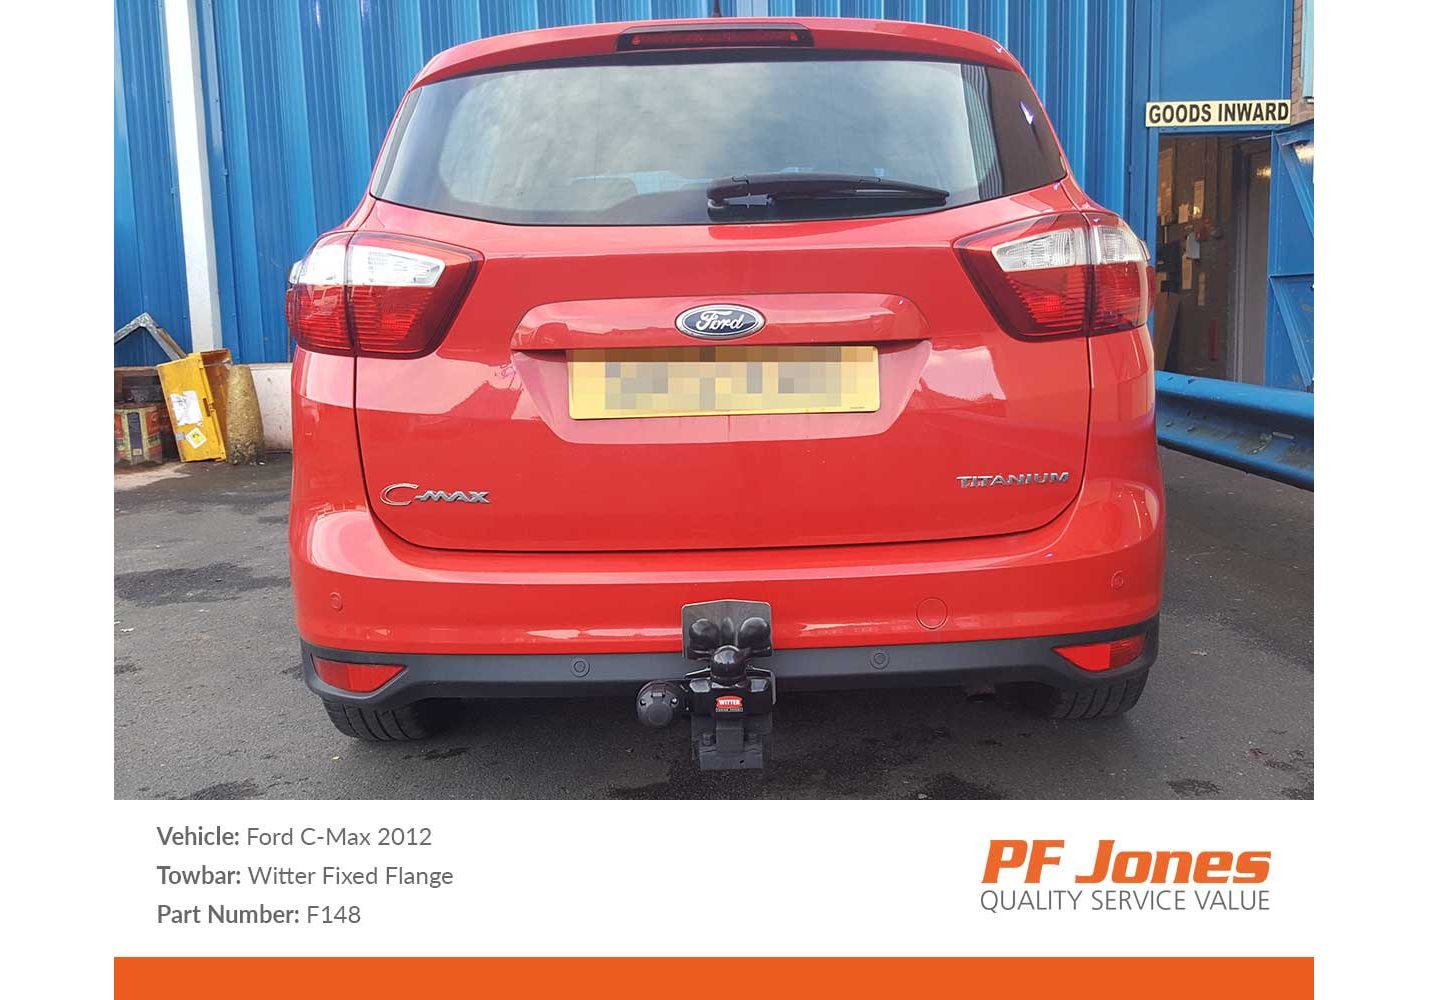 Ford C-Max 2010-2019 Witter Fixed Flange tow bar